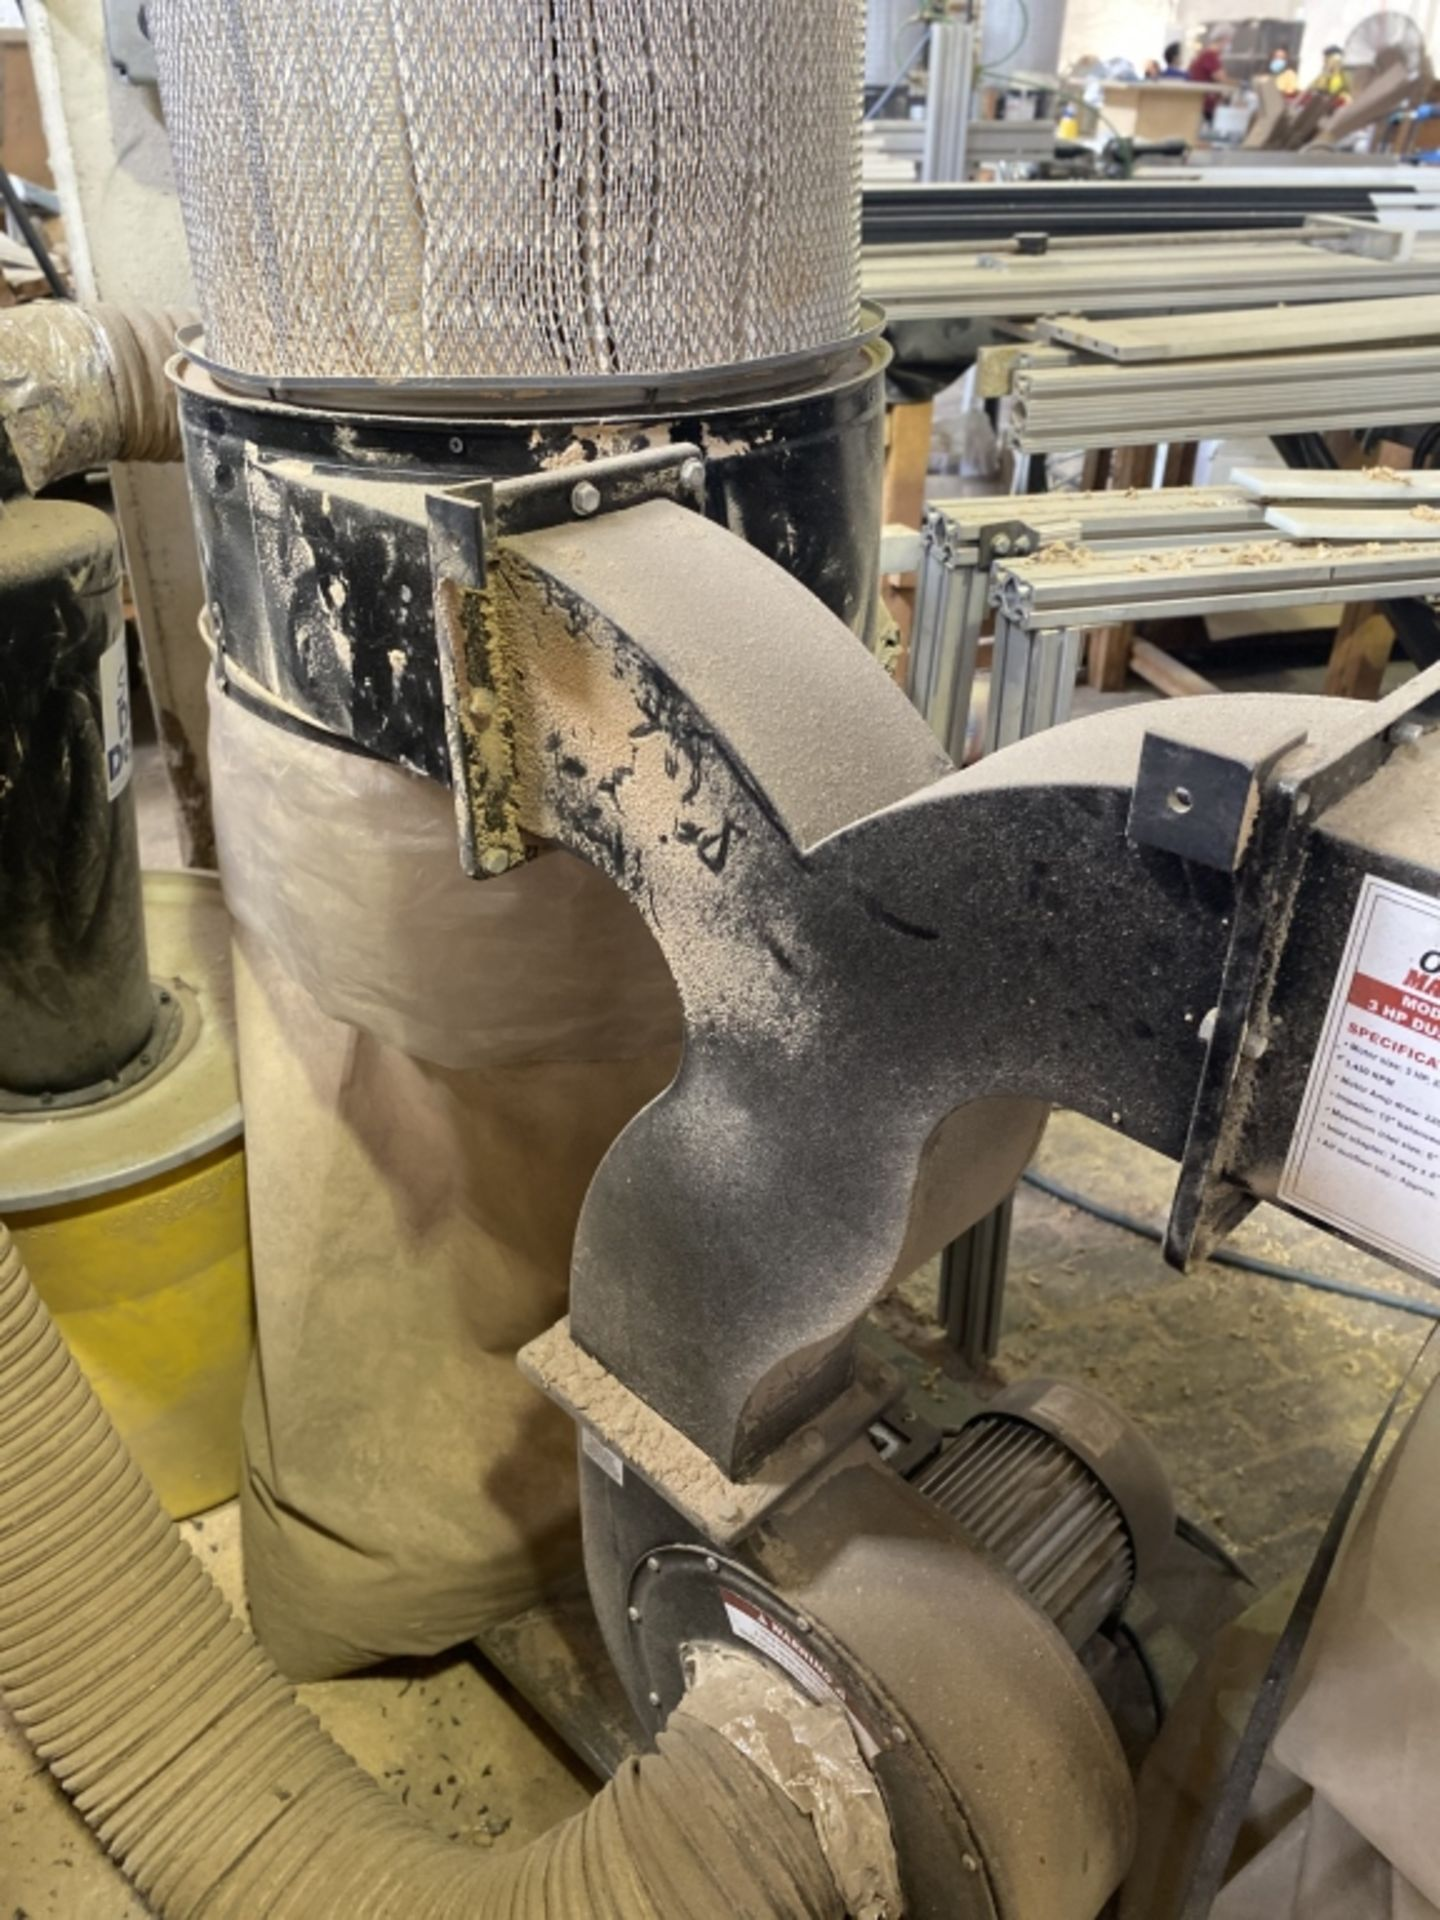 Lot 1020 - Central Machinery 4-Bag Dust Collector